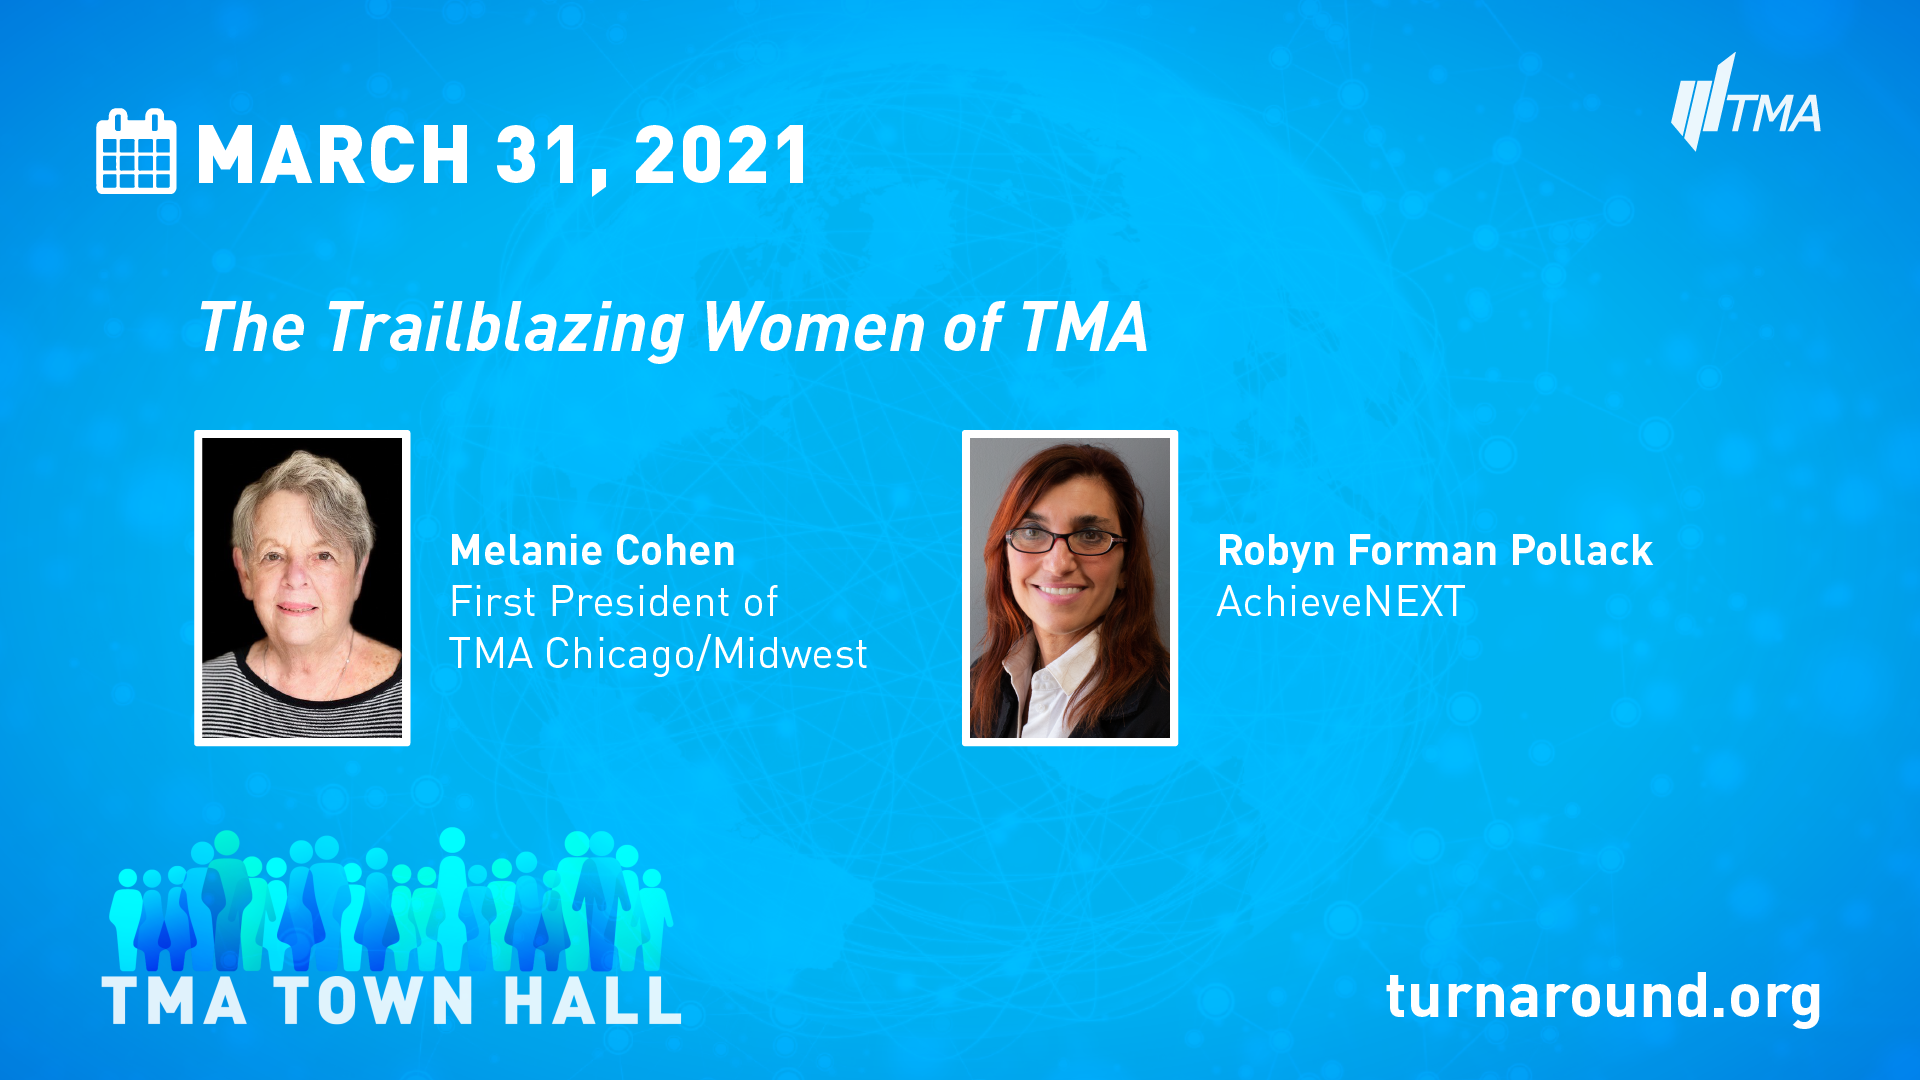 TMA Town Hall for March 31, 2021